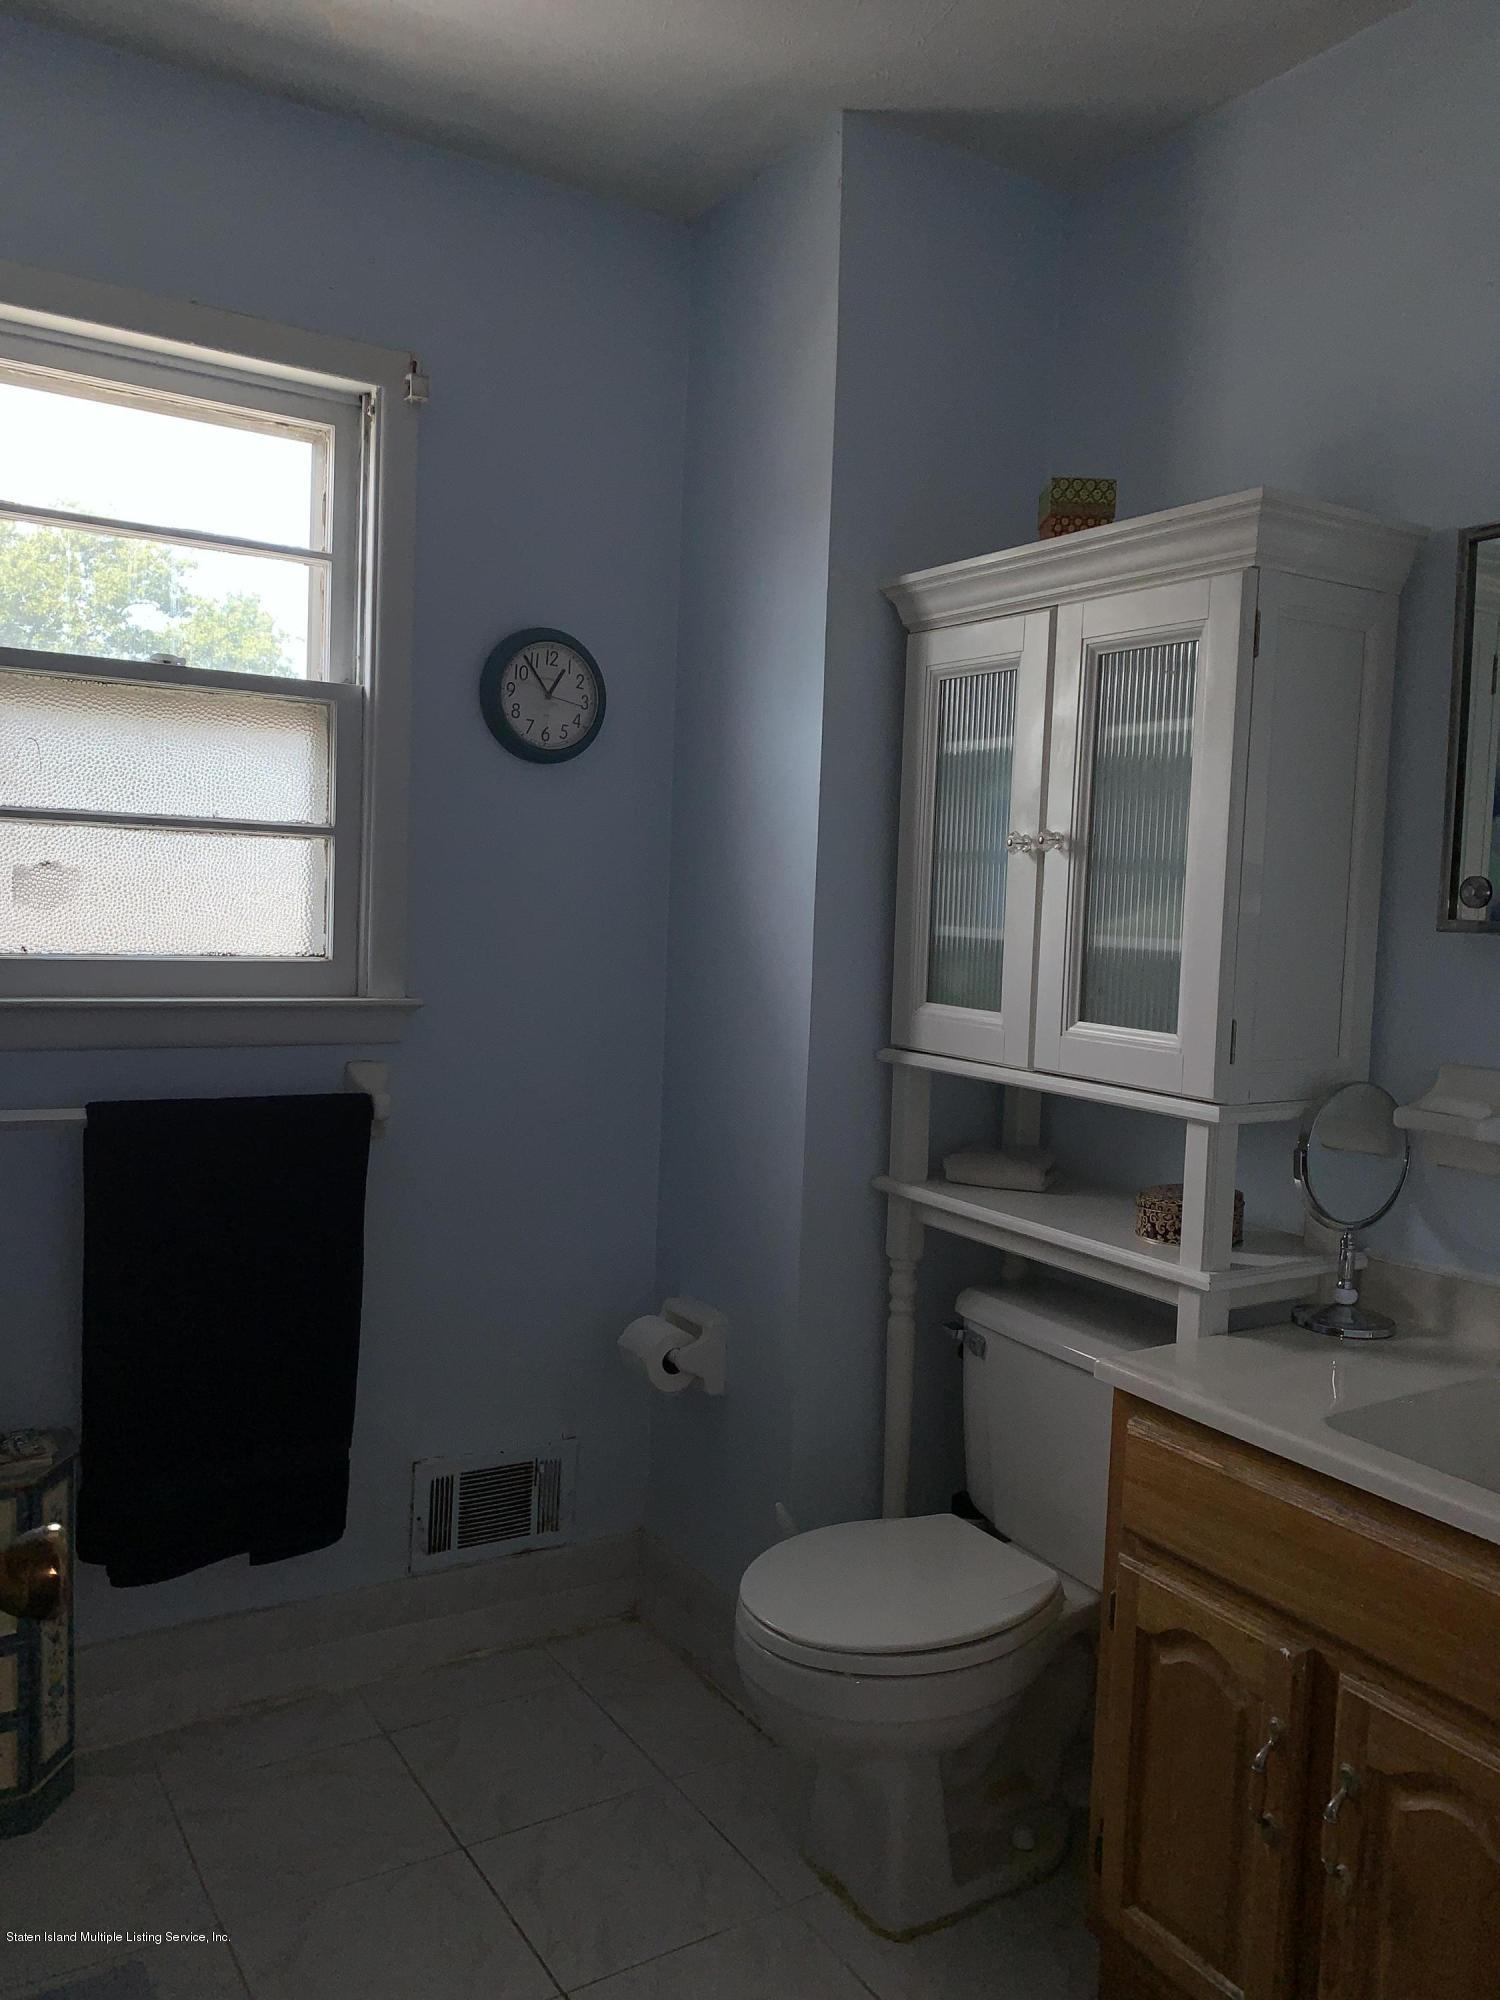 Single Family - Semi-Attached 45 Roma Avenue  Staten Island, NY 10306, MLS-1138173-19